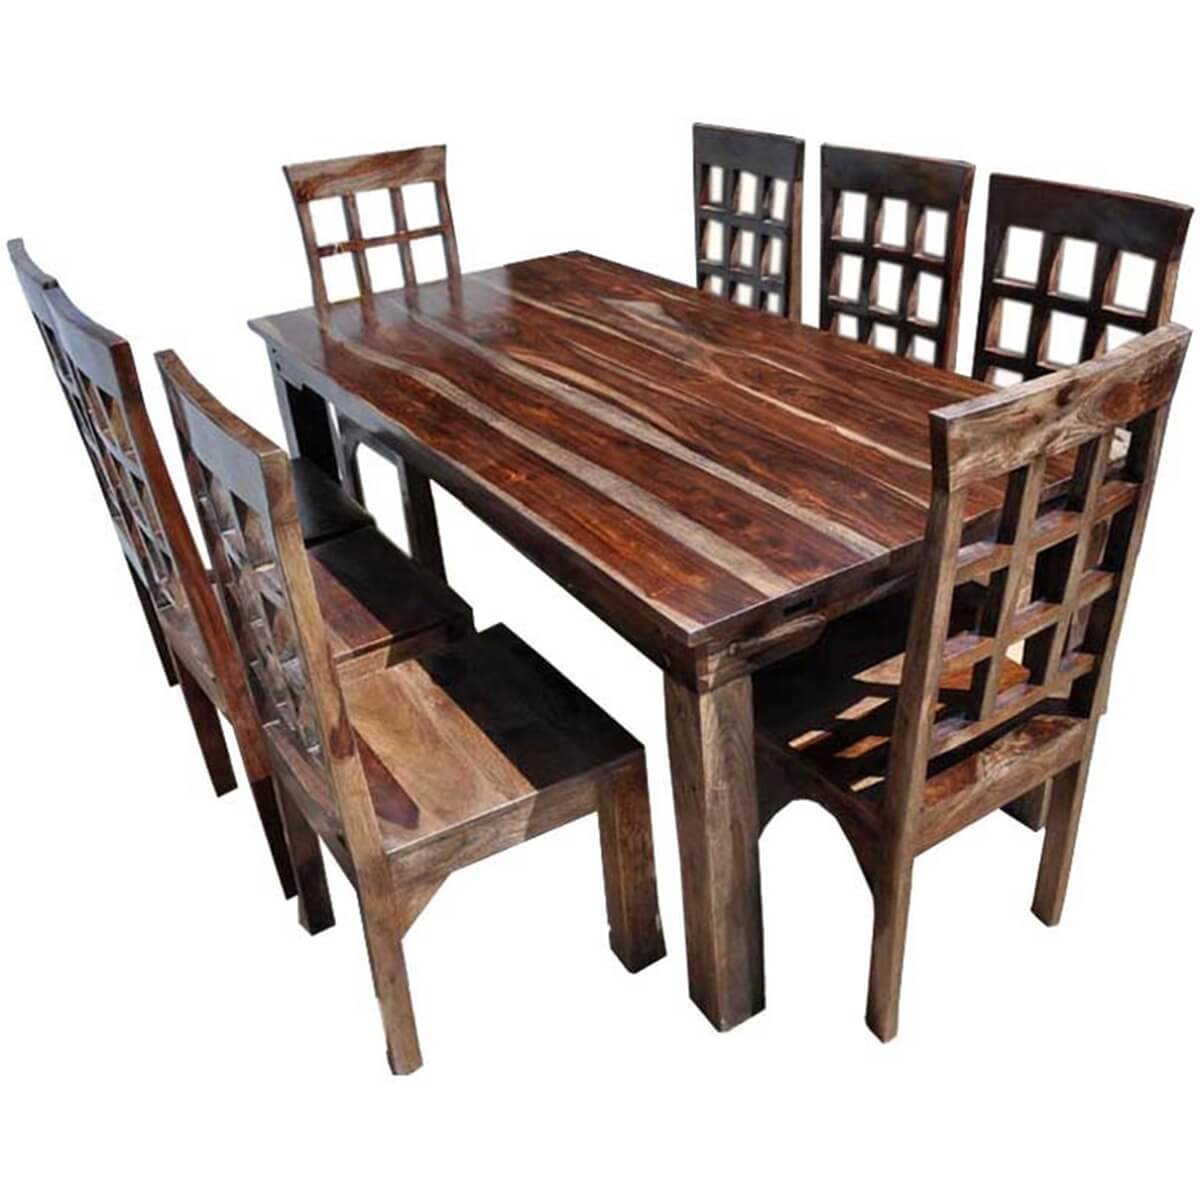 Portland rustic furniture dining room table chair set w extension - Extended dining table sets ...